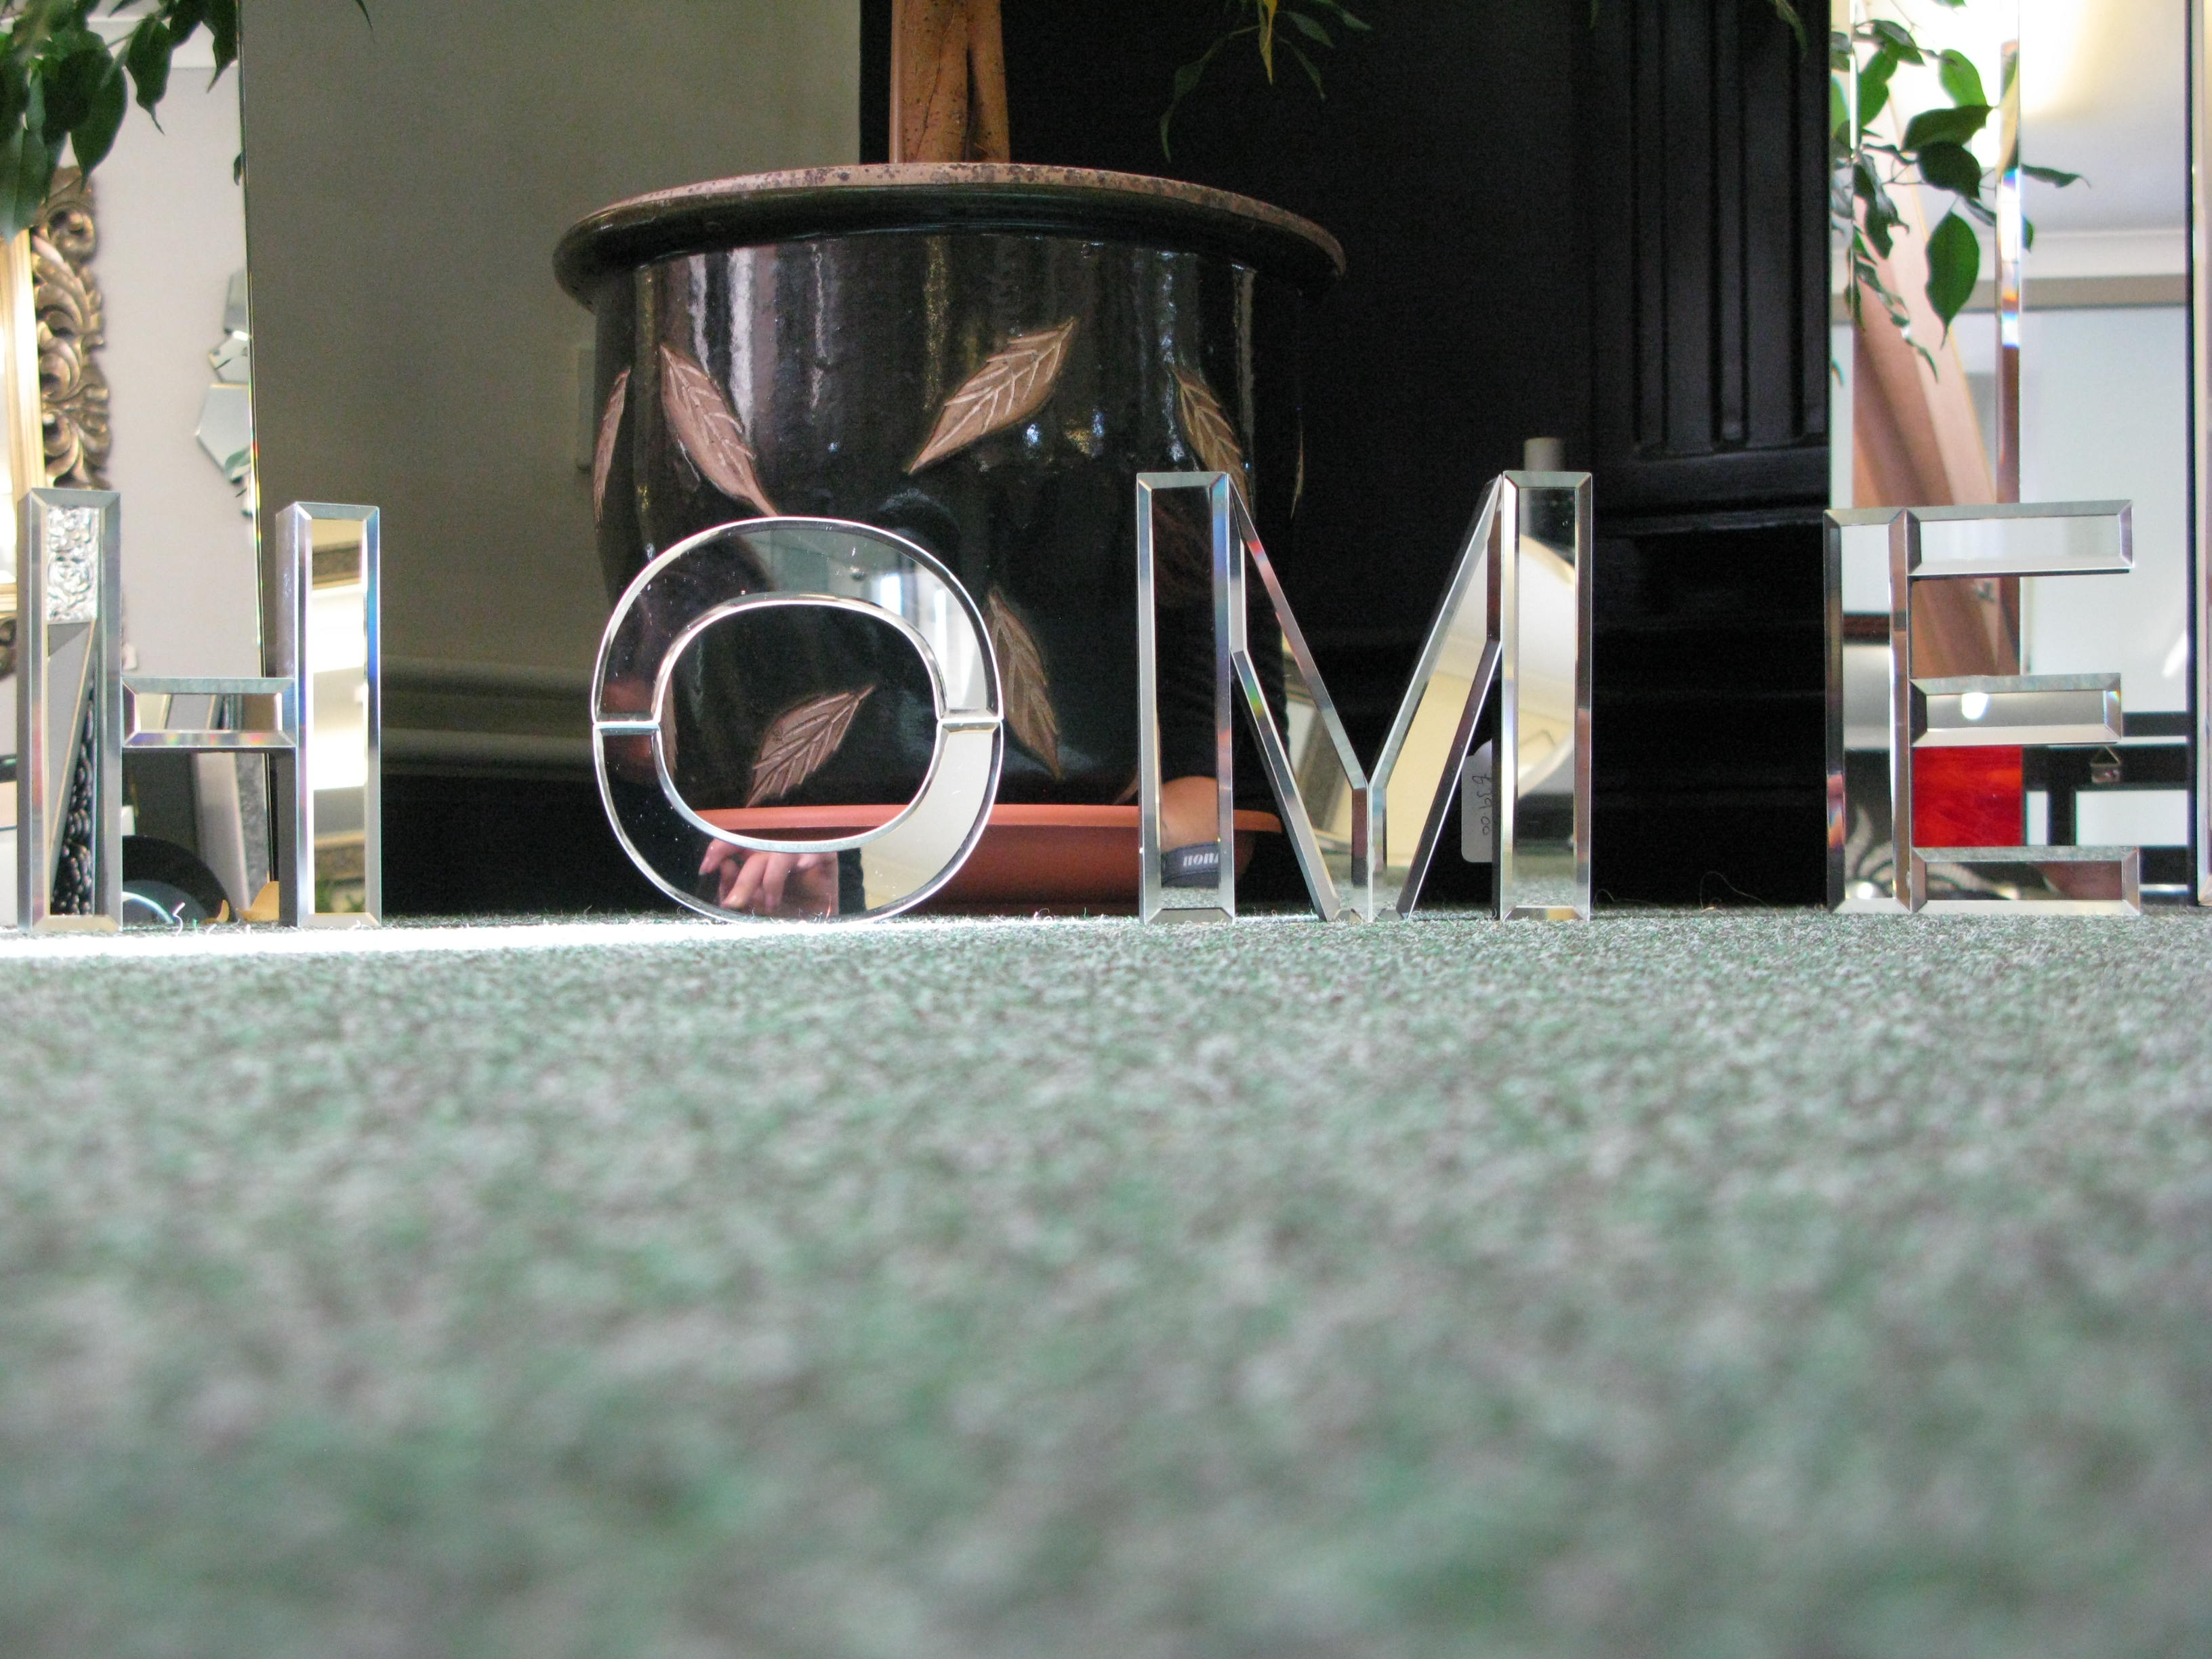 home mirror text on carpet